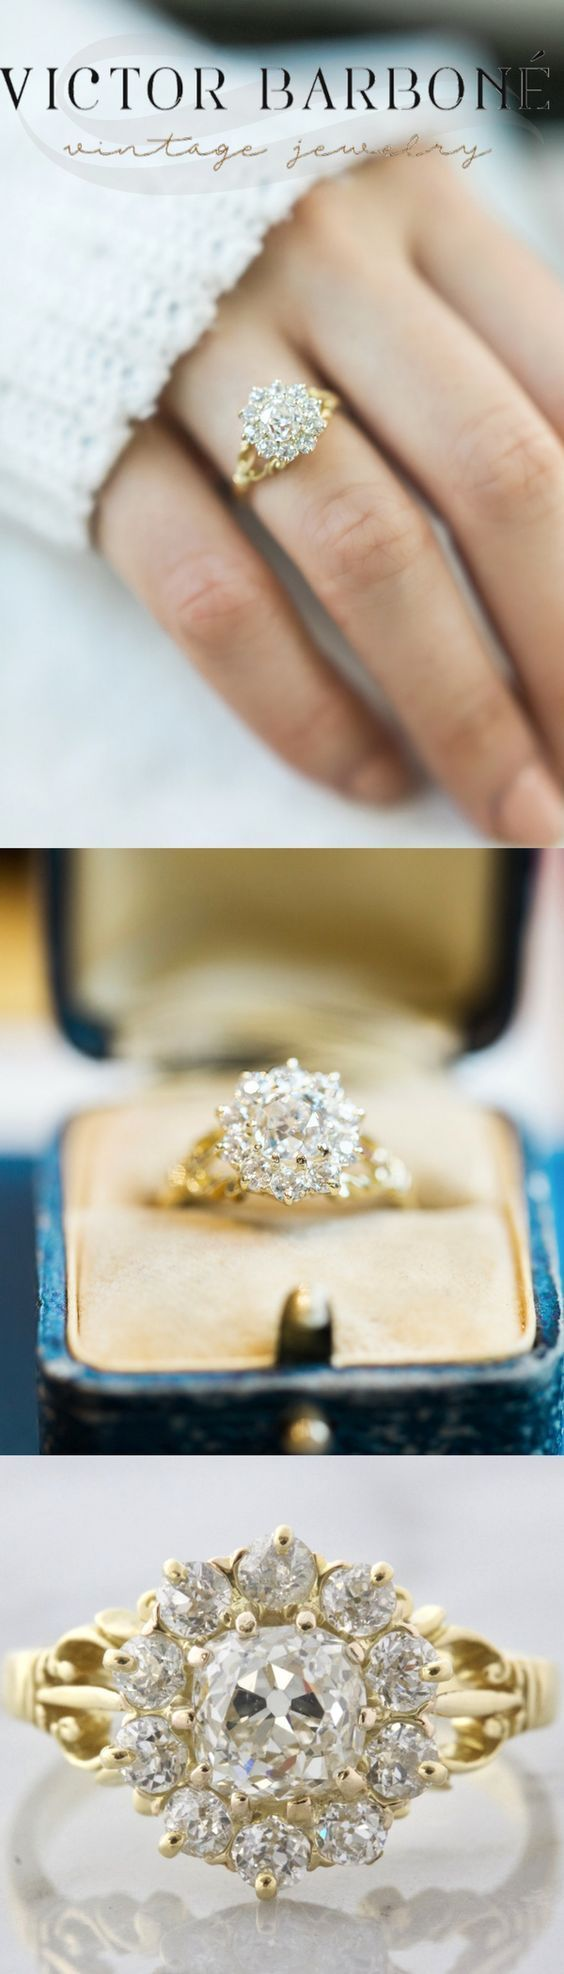 An amazing Vintage Cluster Engagement Ring from Victor Barboné Jewelry! This beauty centers an old mine cut diamond set in yellow gold with an intricate split shank!